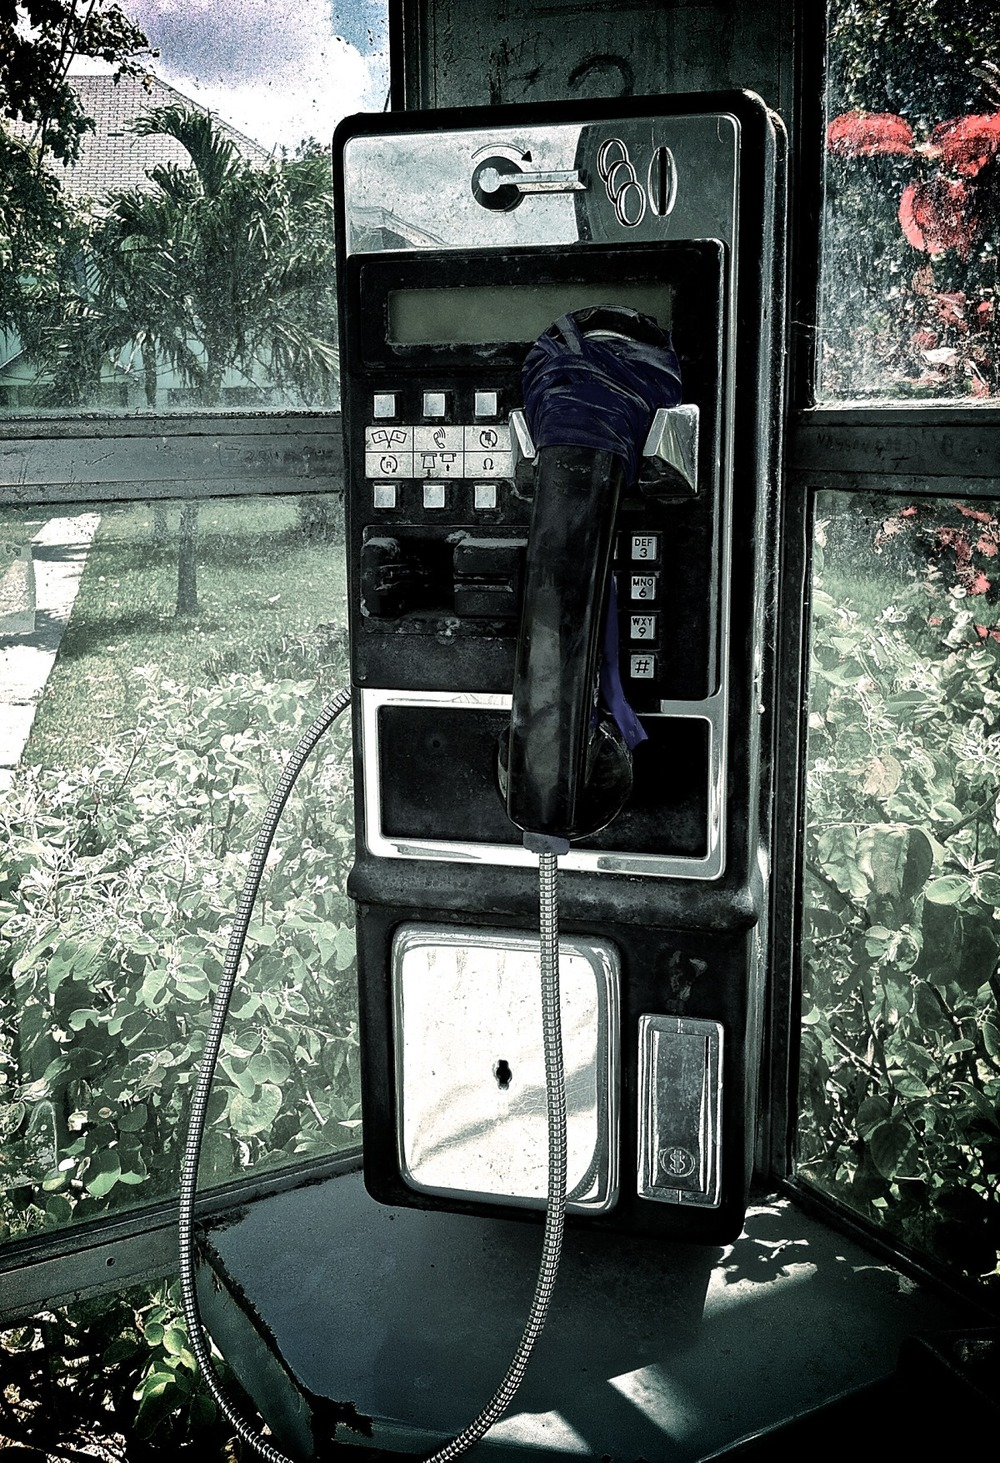 payphone export july 2012 5.jpg